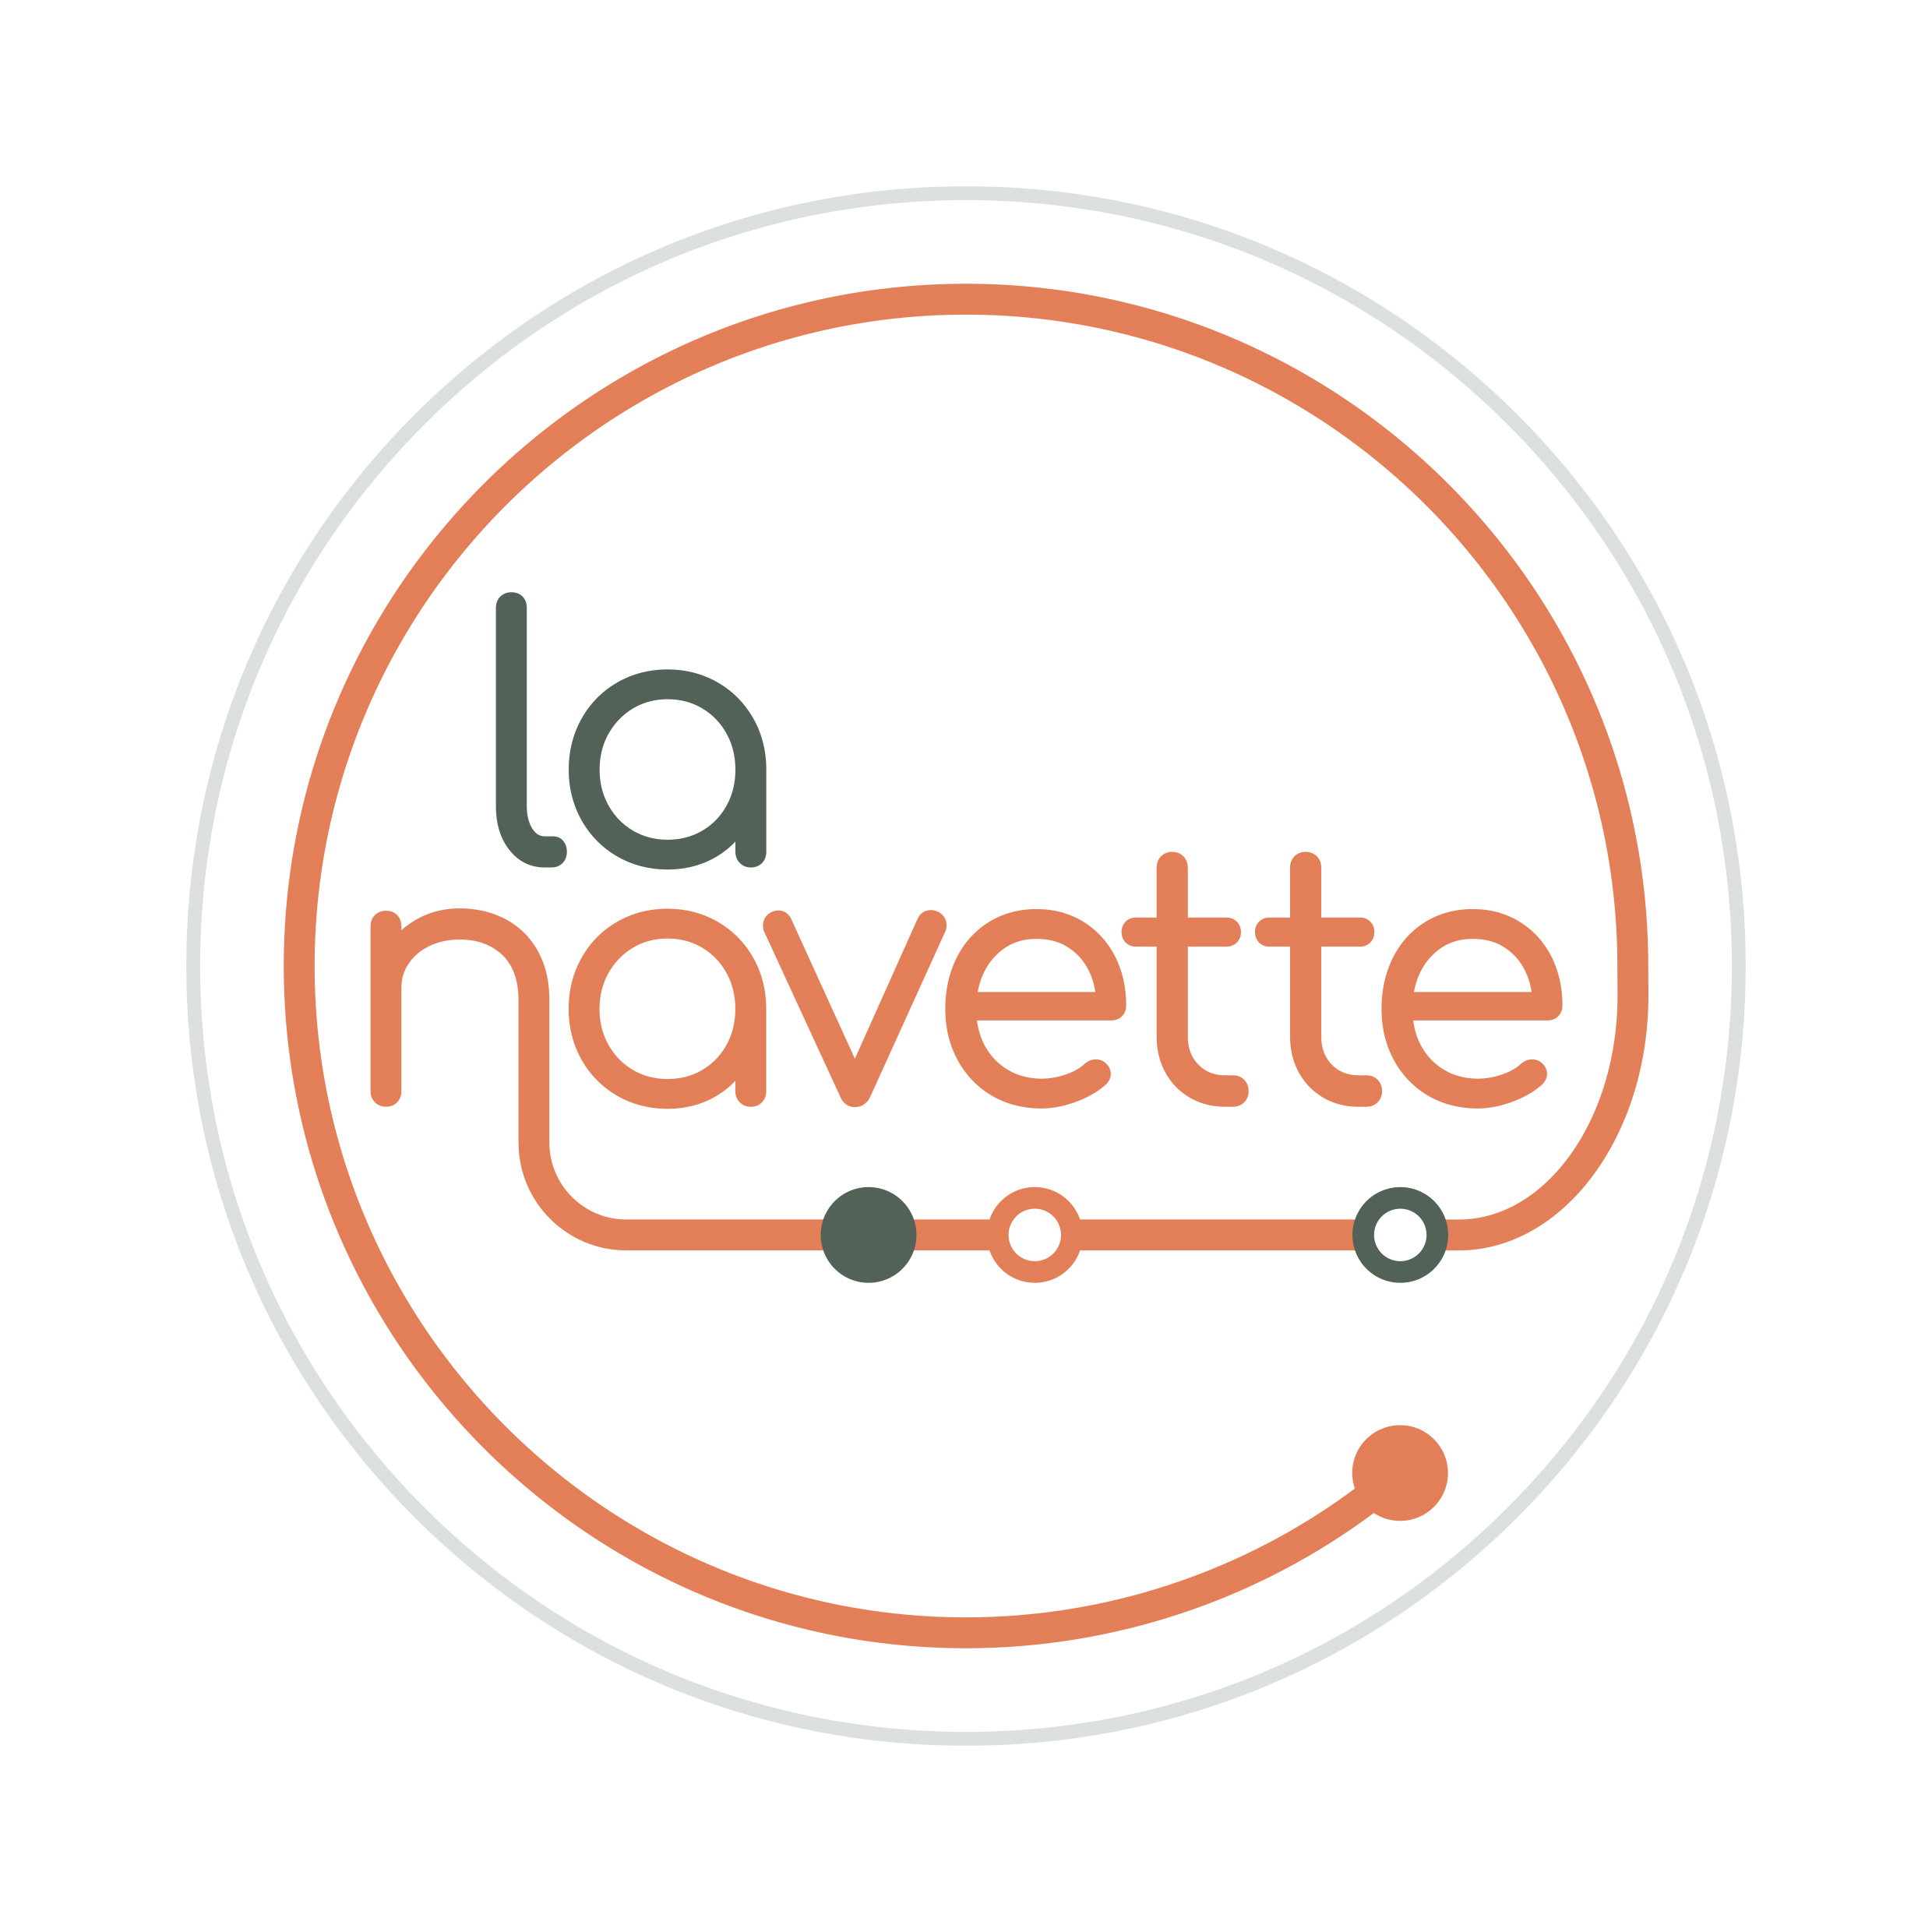 sticker-logo-la-navette-lamorlaye-filet.jpg